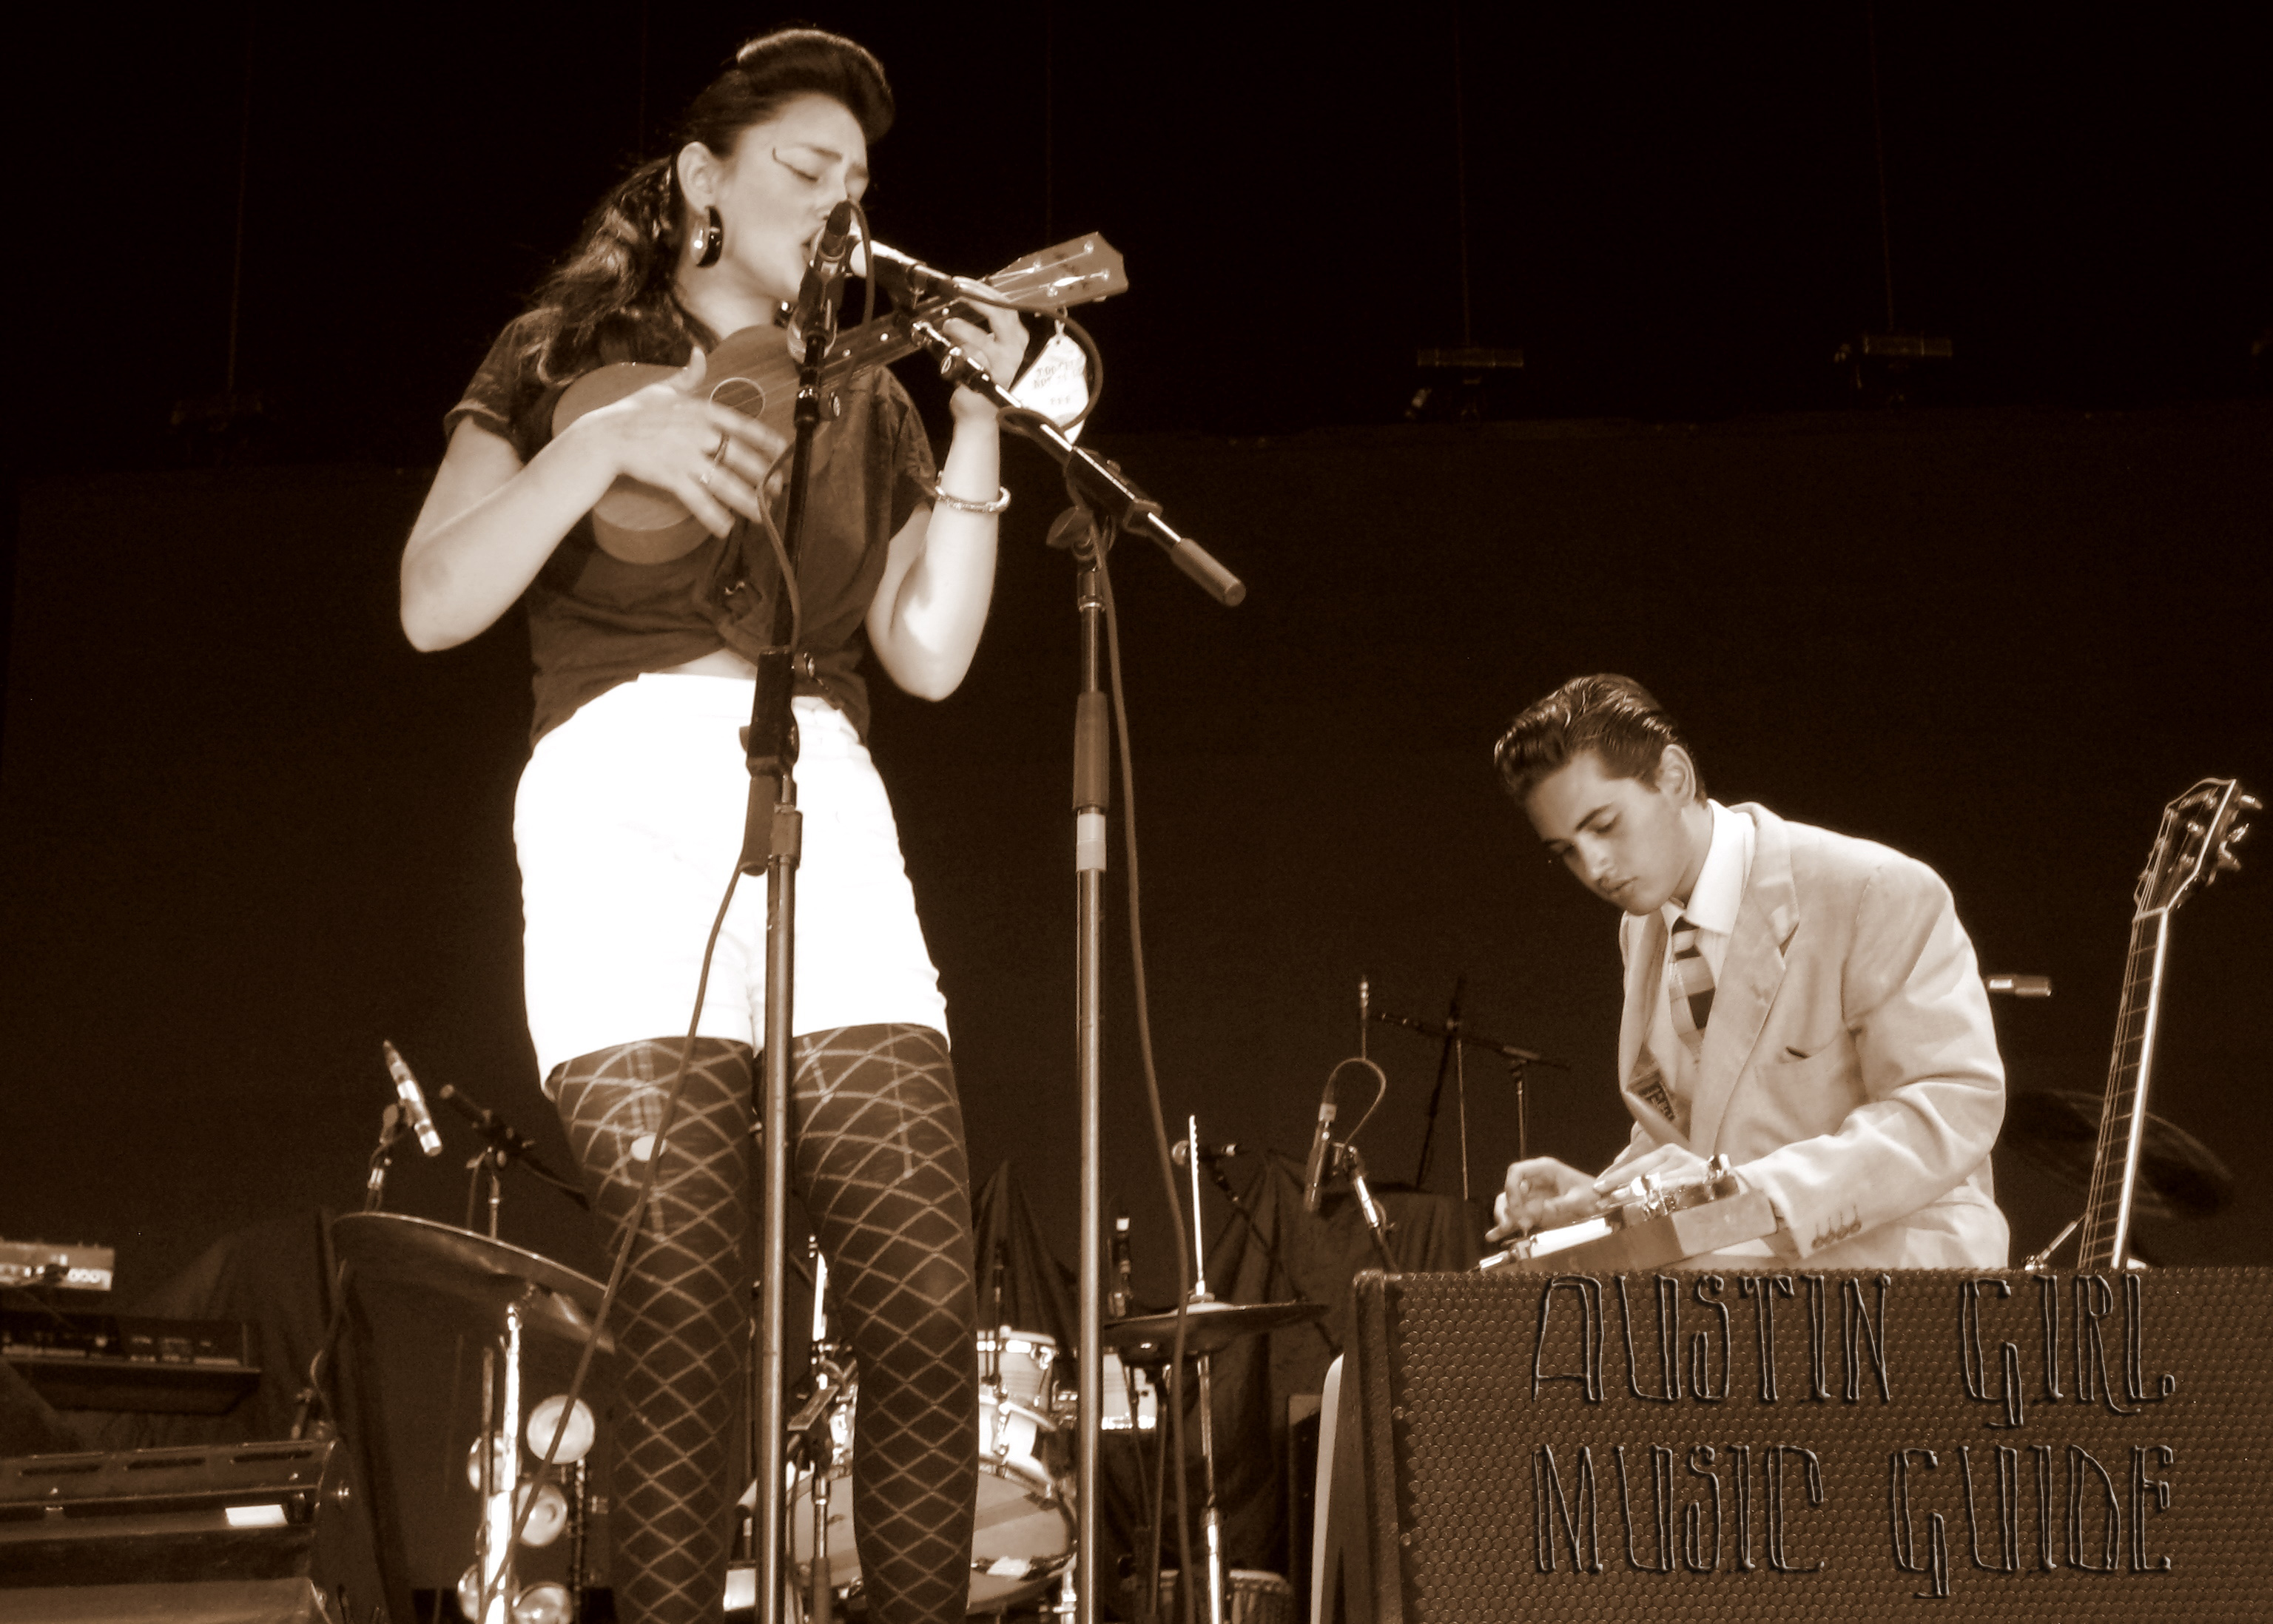 Concert Review: Kitty, Daisy and Lewis (Dallas/Houston, 7/21-7/22)